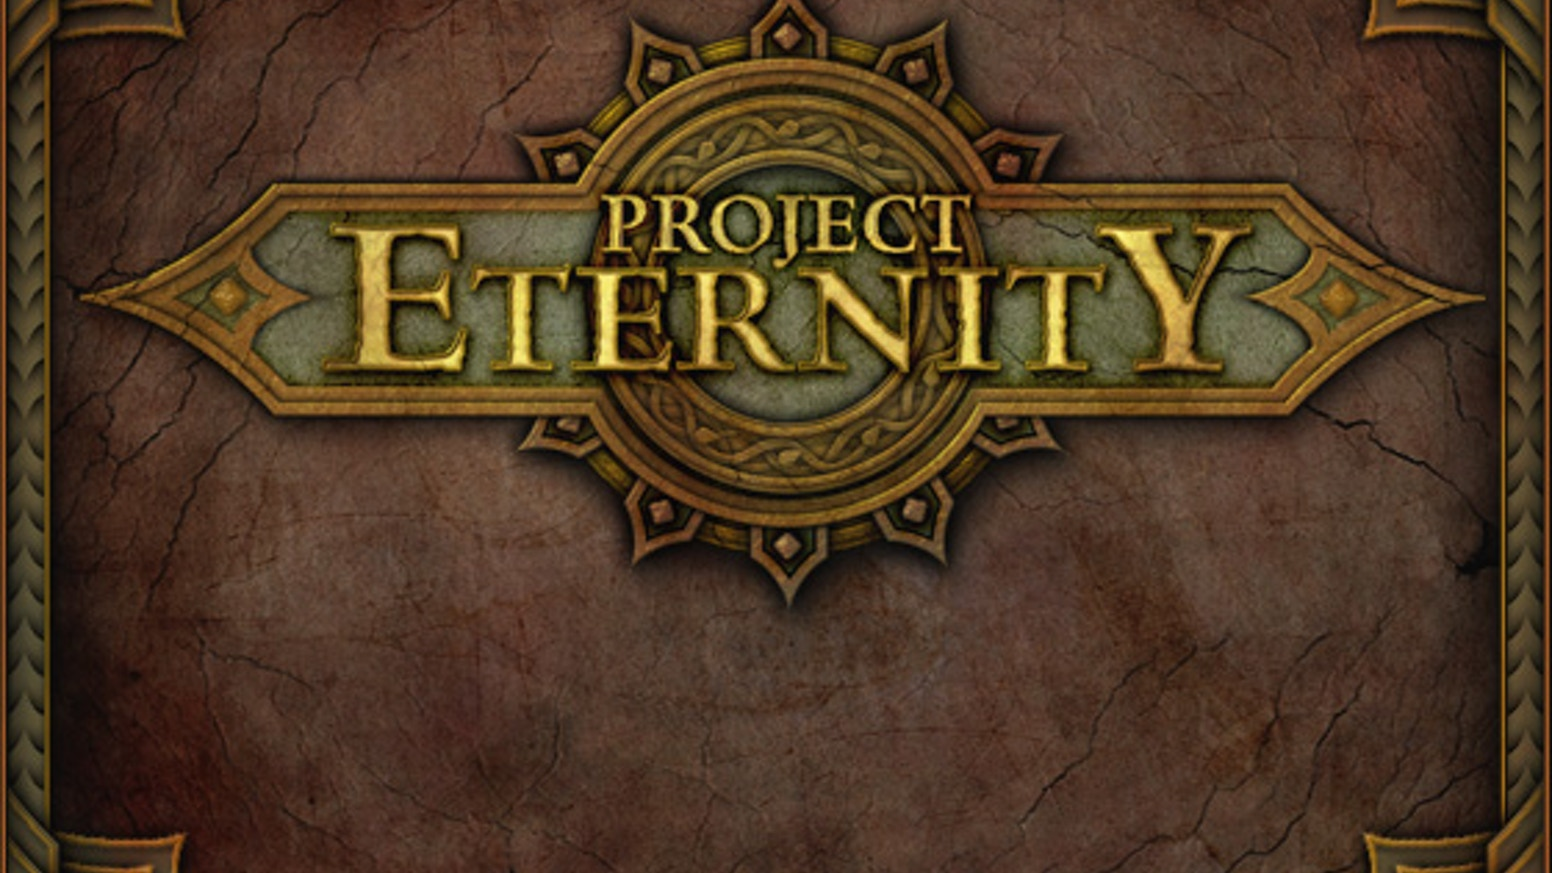 Project Eternity by Obsidian Entertainment — Kickstarter